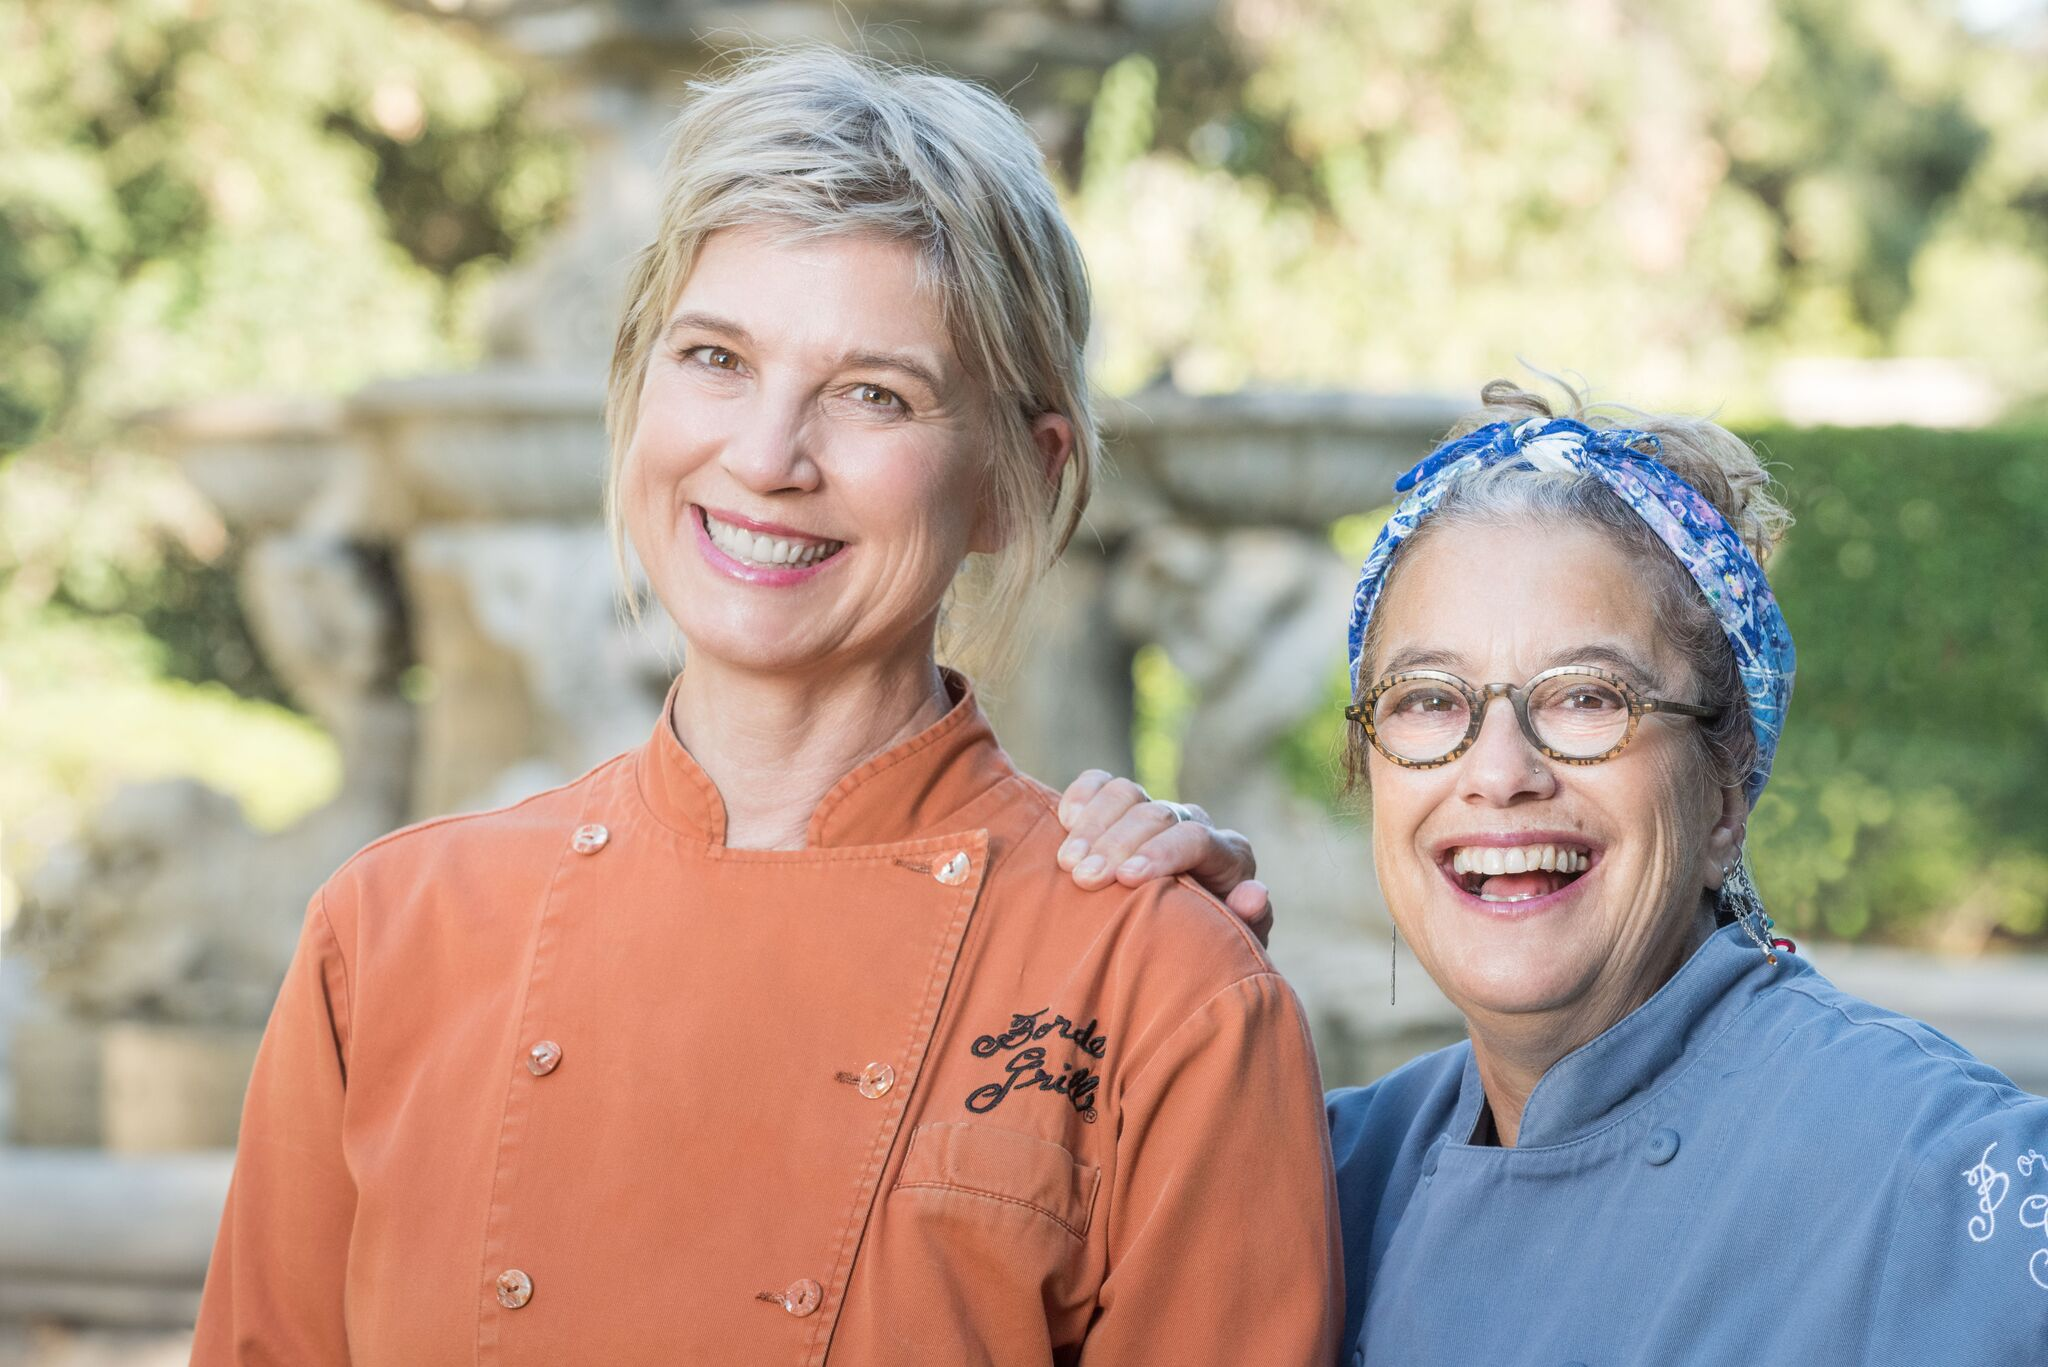 Chefs Mary Sue Milliken and Susan Feniger of Border Grill in Los Angeles